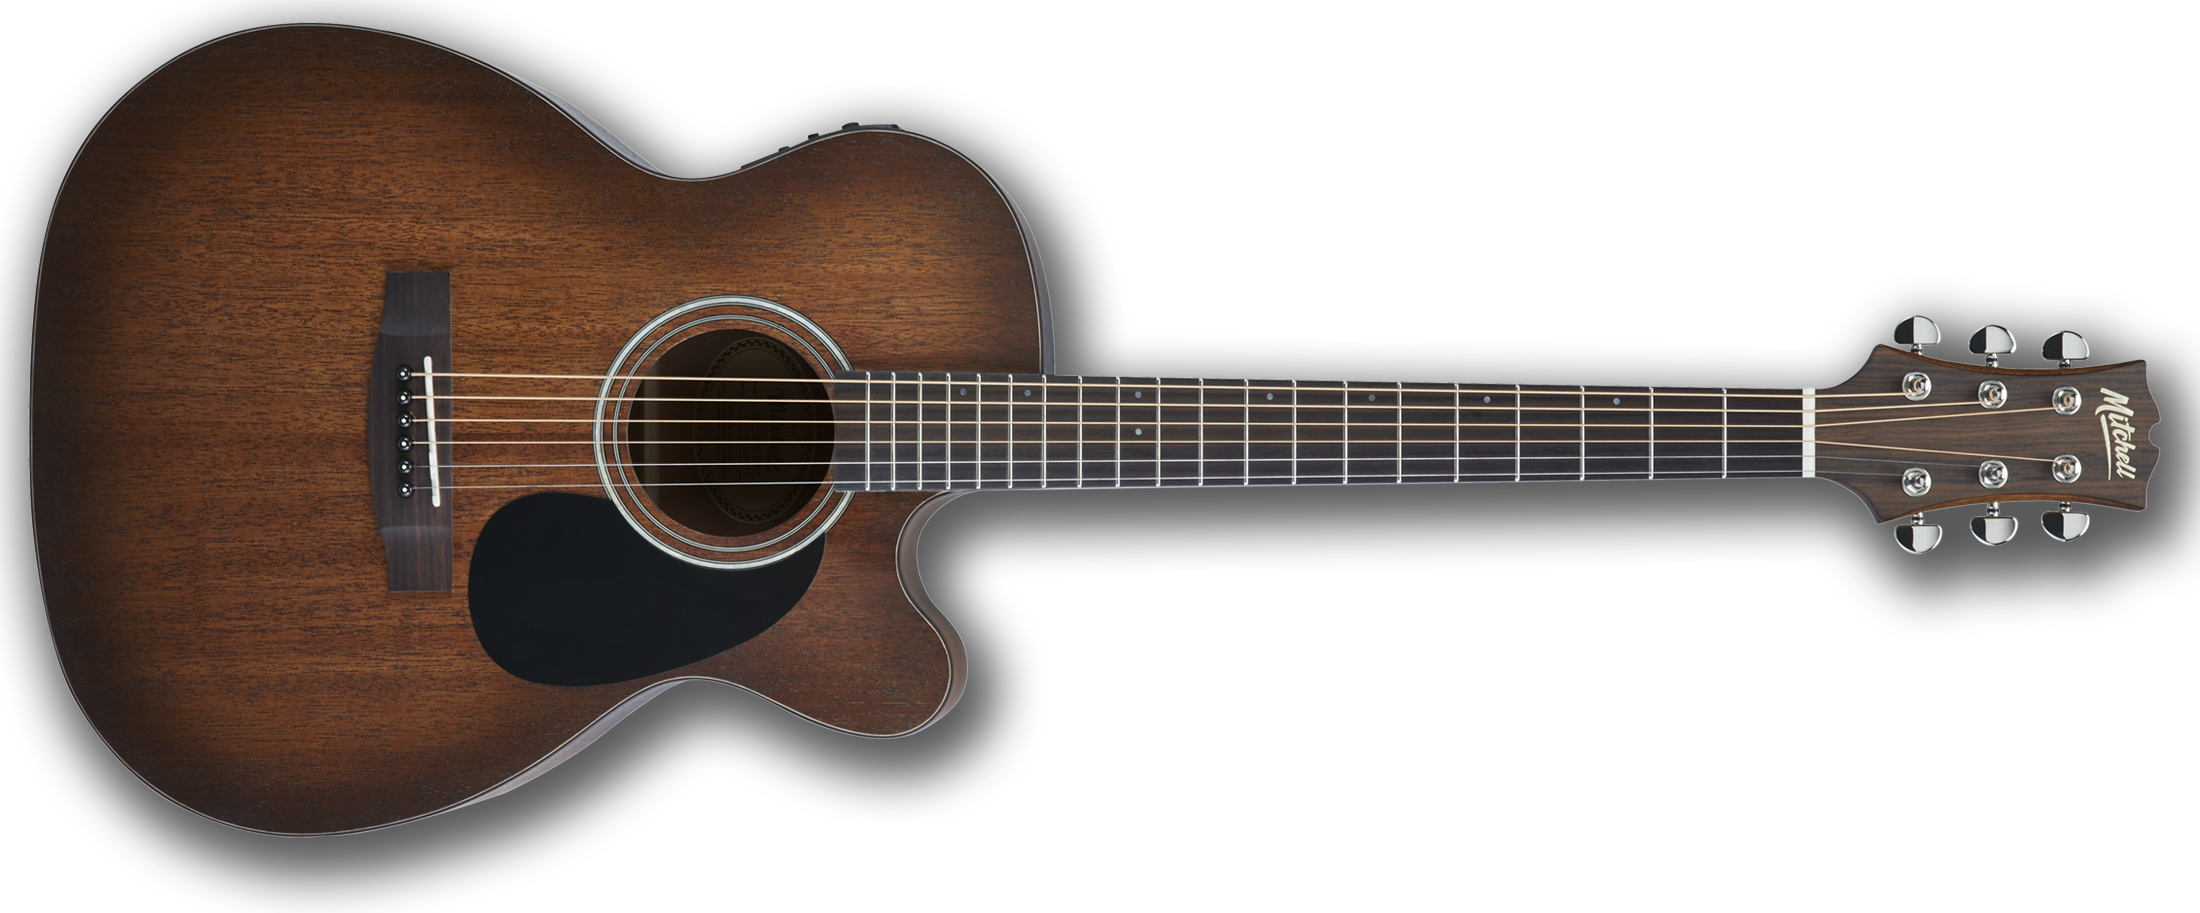 Mitchell T333CE-BST Auditorium-Size Cutaway Acoustic-Electric Guitar Terra Series